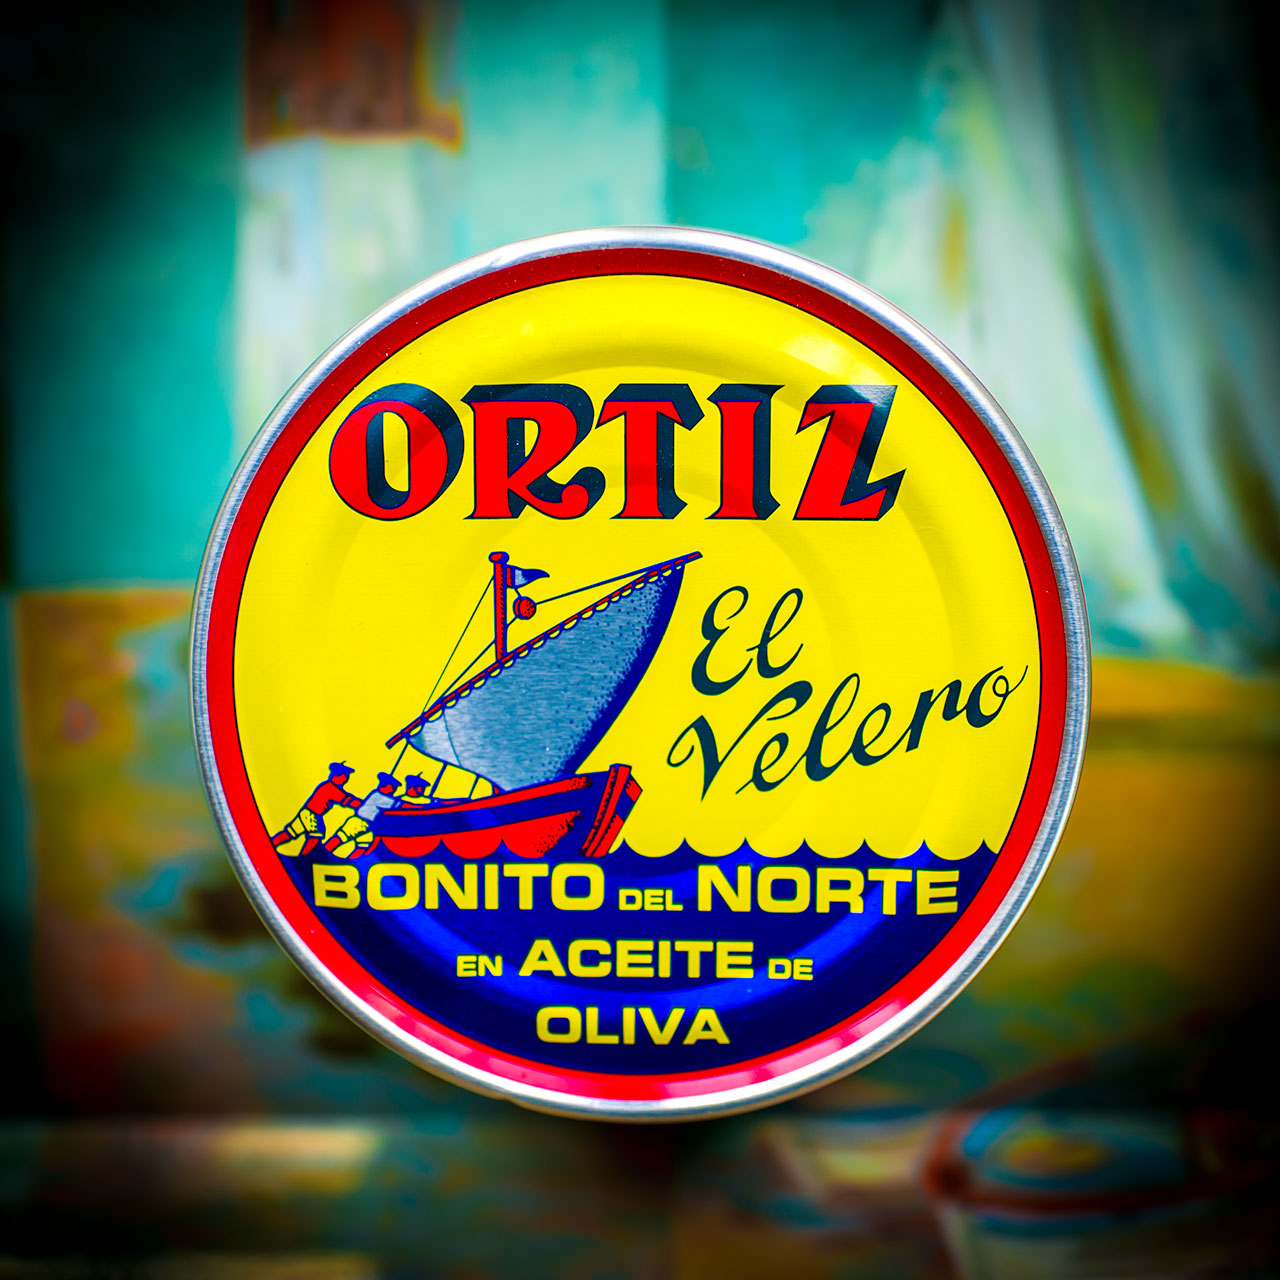 Ortiz Bonito del Norte Tuna 8.8 oz tin